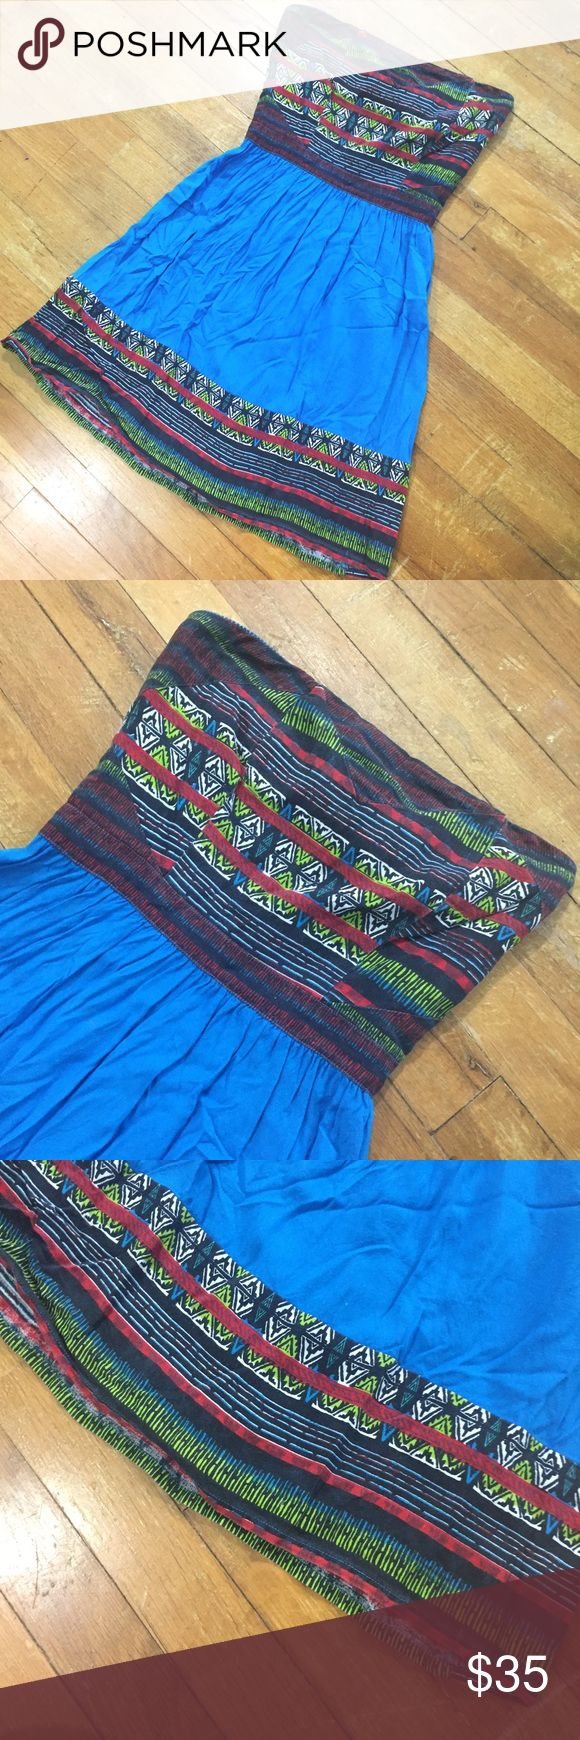 "UO silence + noise blue Aztec mini dress Like new with no flaws! Gorgeous dress that would be perfect with leggings or by itself! Please check measurements!! True to size.       Measurements: 17"" from waist to hem Waist measures 11"" (measured flat) Bust measures 13"" (measured flat) Top to waist measures 9""  Hem measures 23"" (measured flat) Urban Outfitters Dresses Mini"